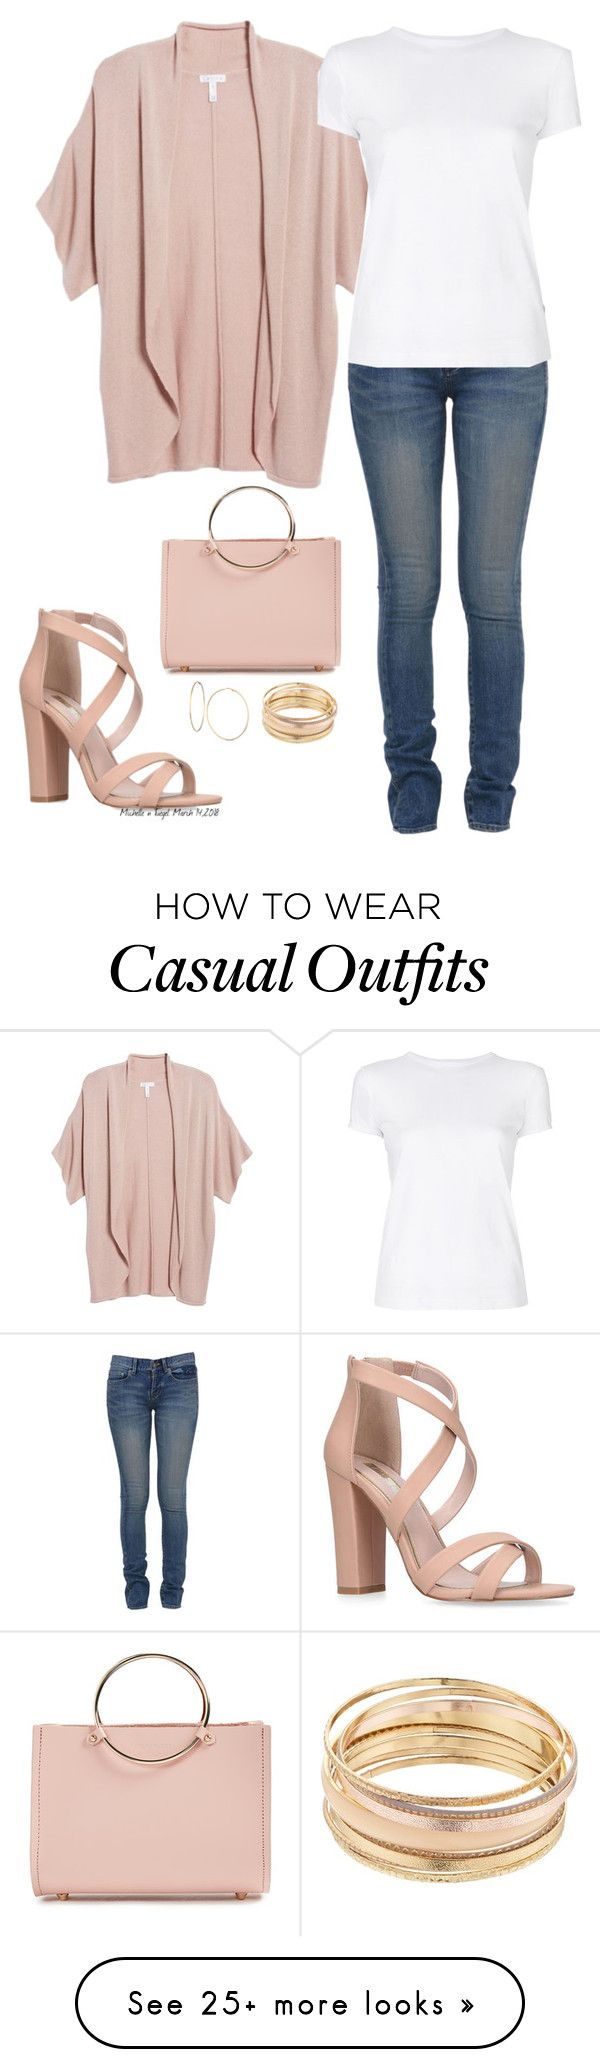 """""""Casual Saturday afternoon"""" by veronababy on Polyvore featuring Miss KG, Future Glory Co., Yves Saint Laurent, Leith, Helmut Lang, Mudd and GUESS"""